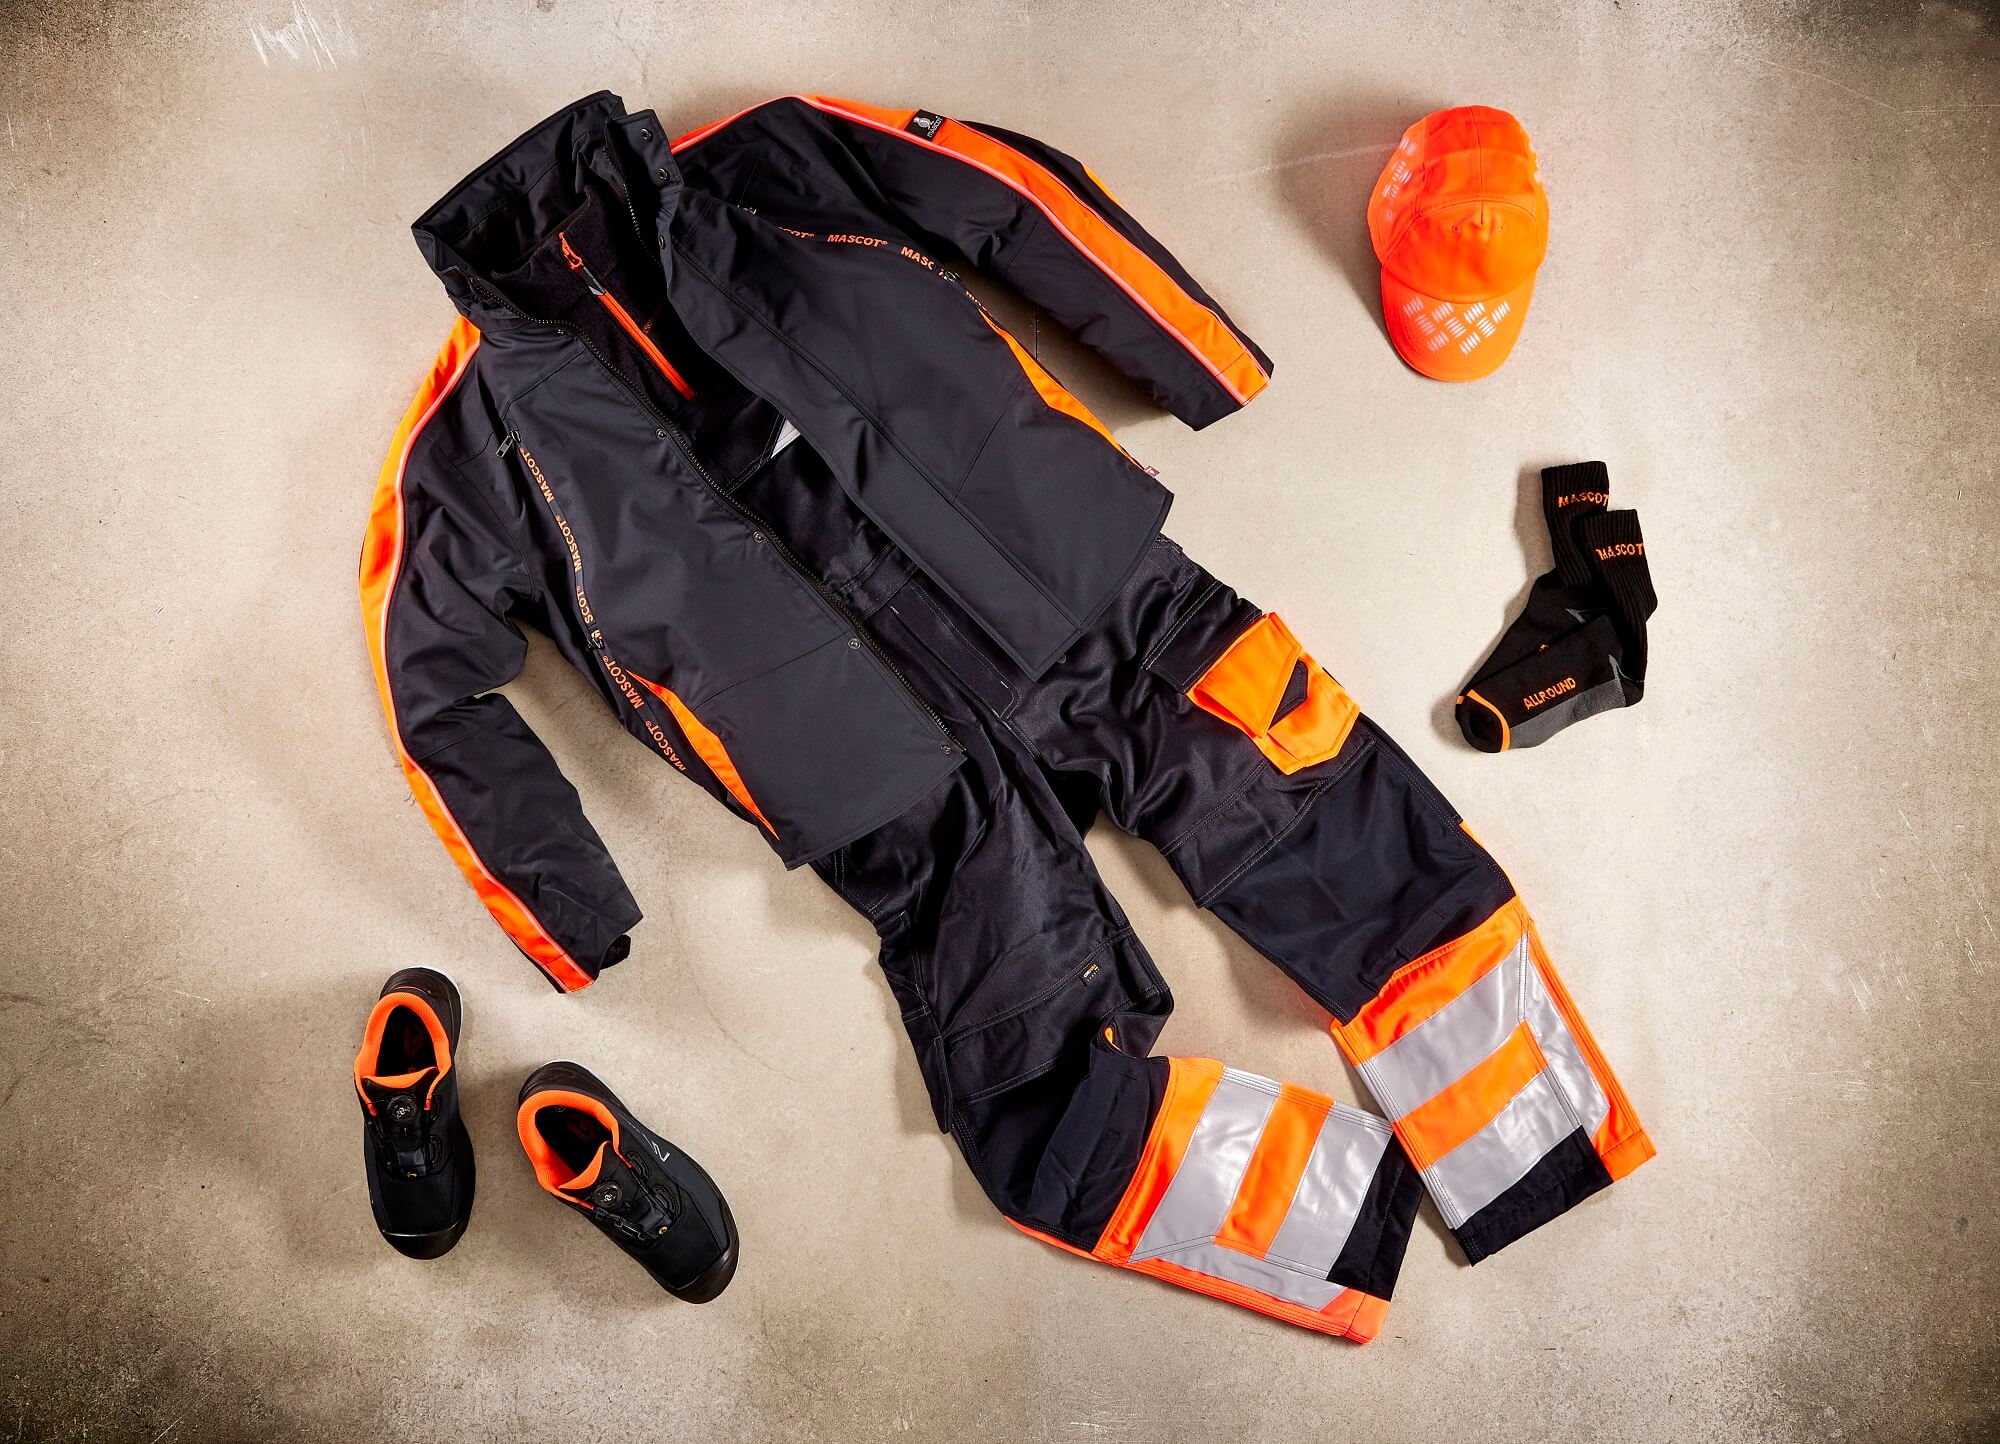 Fluorescent orange - Safety Shoe, Work Trousers & Jacket - Collage